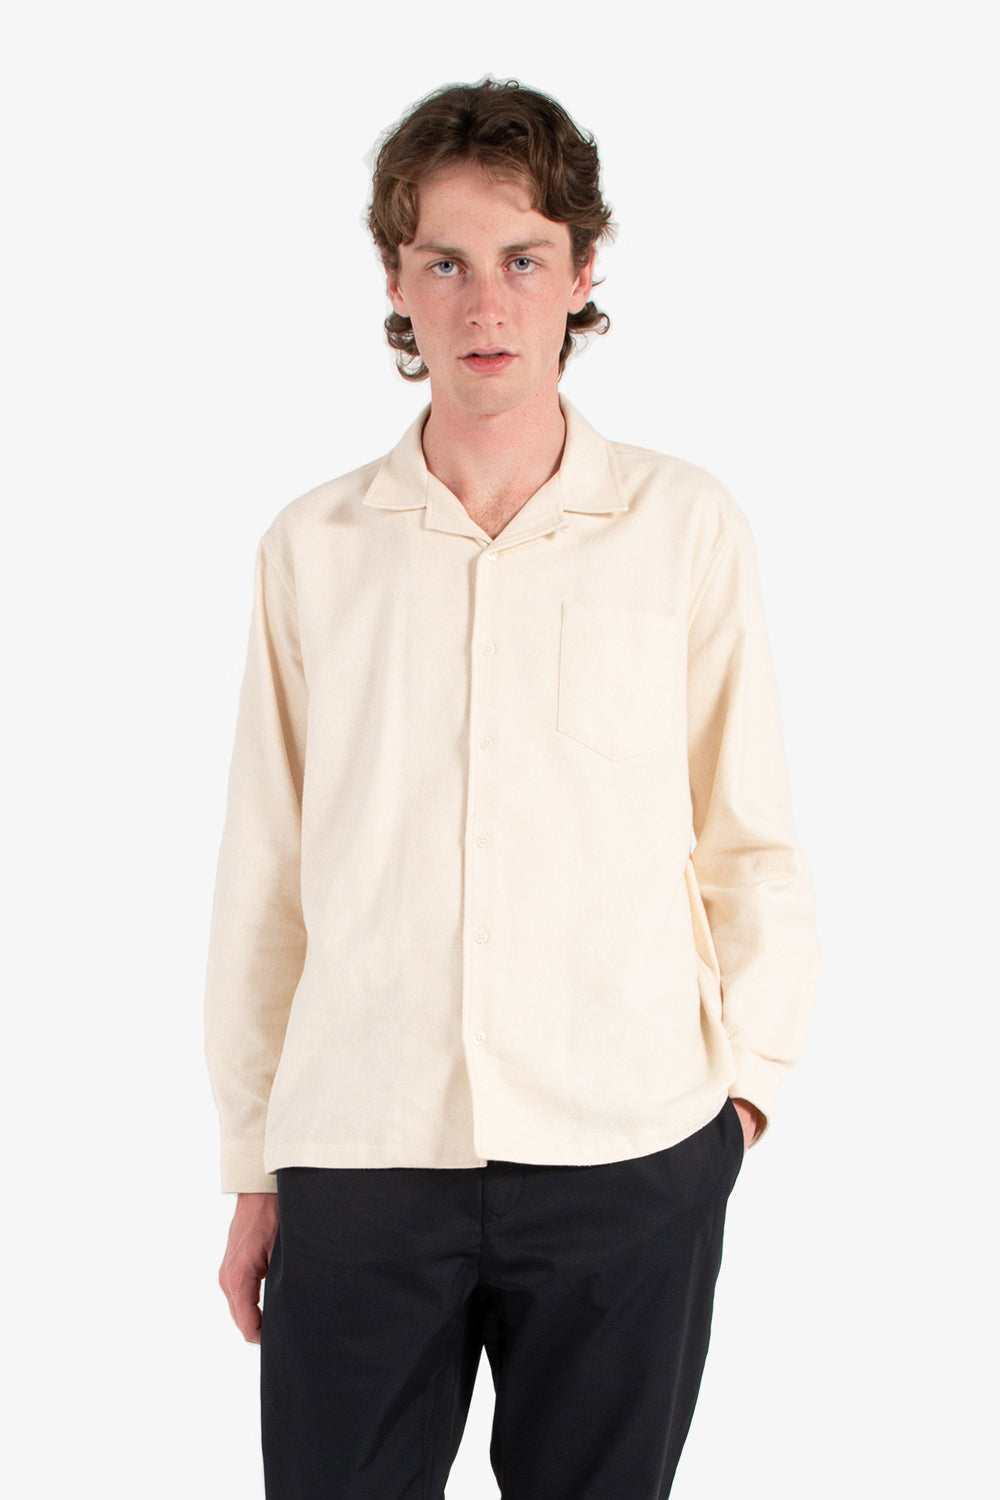 kestin tain shirt winter white